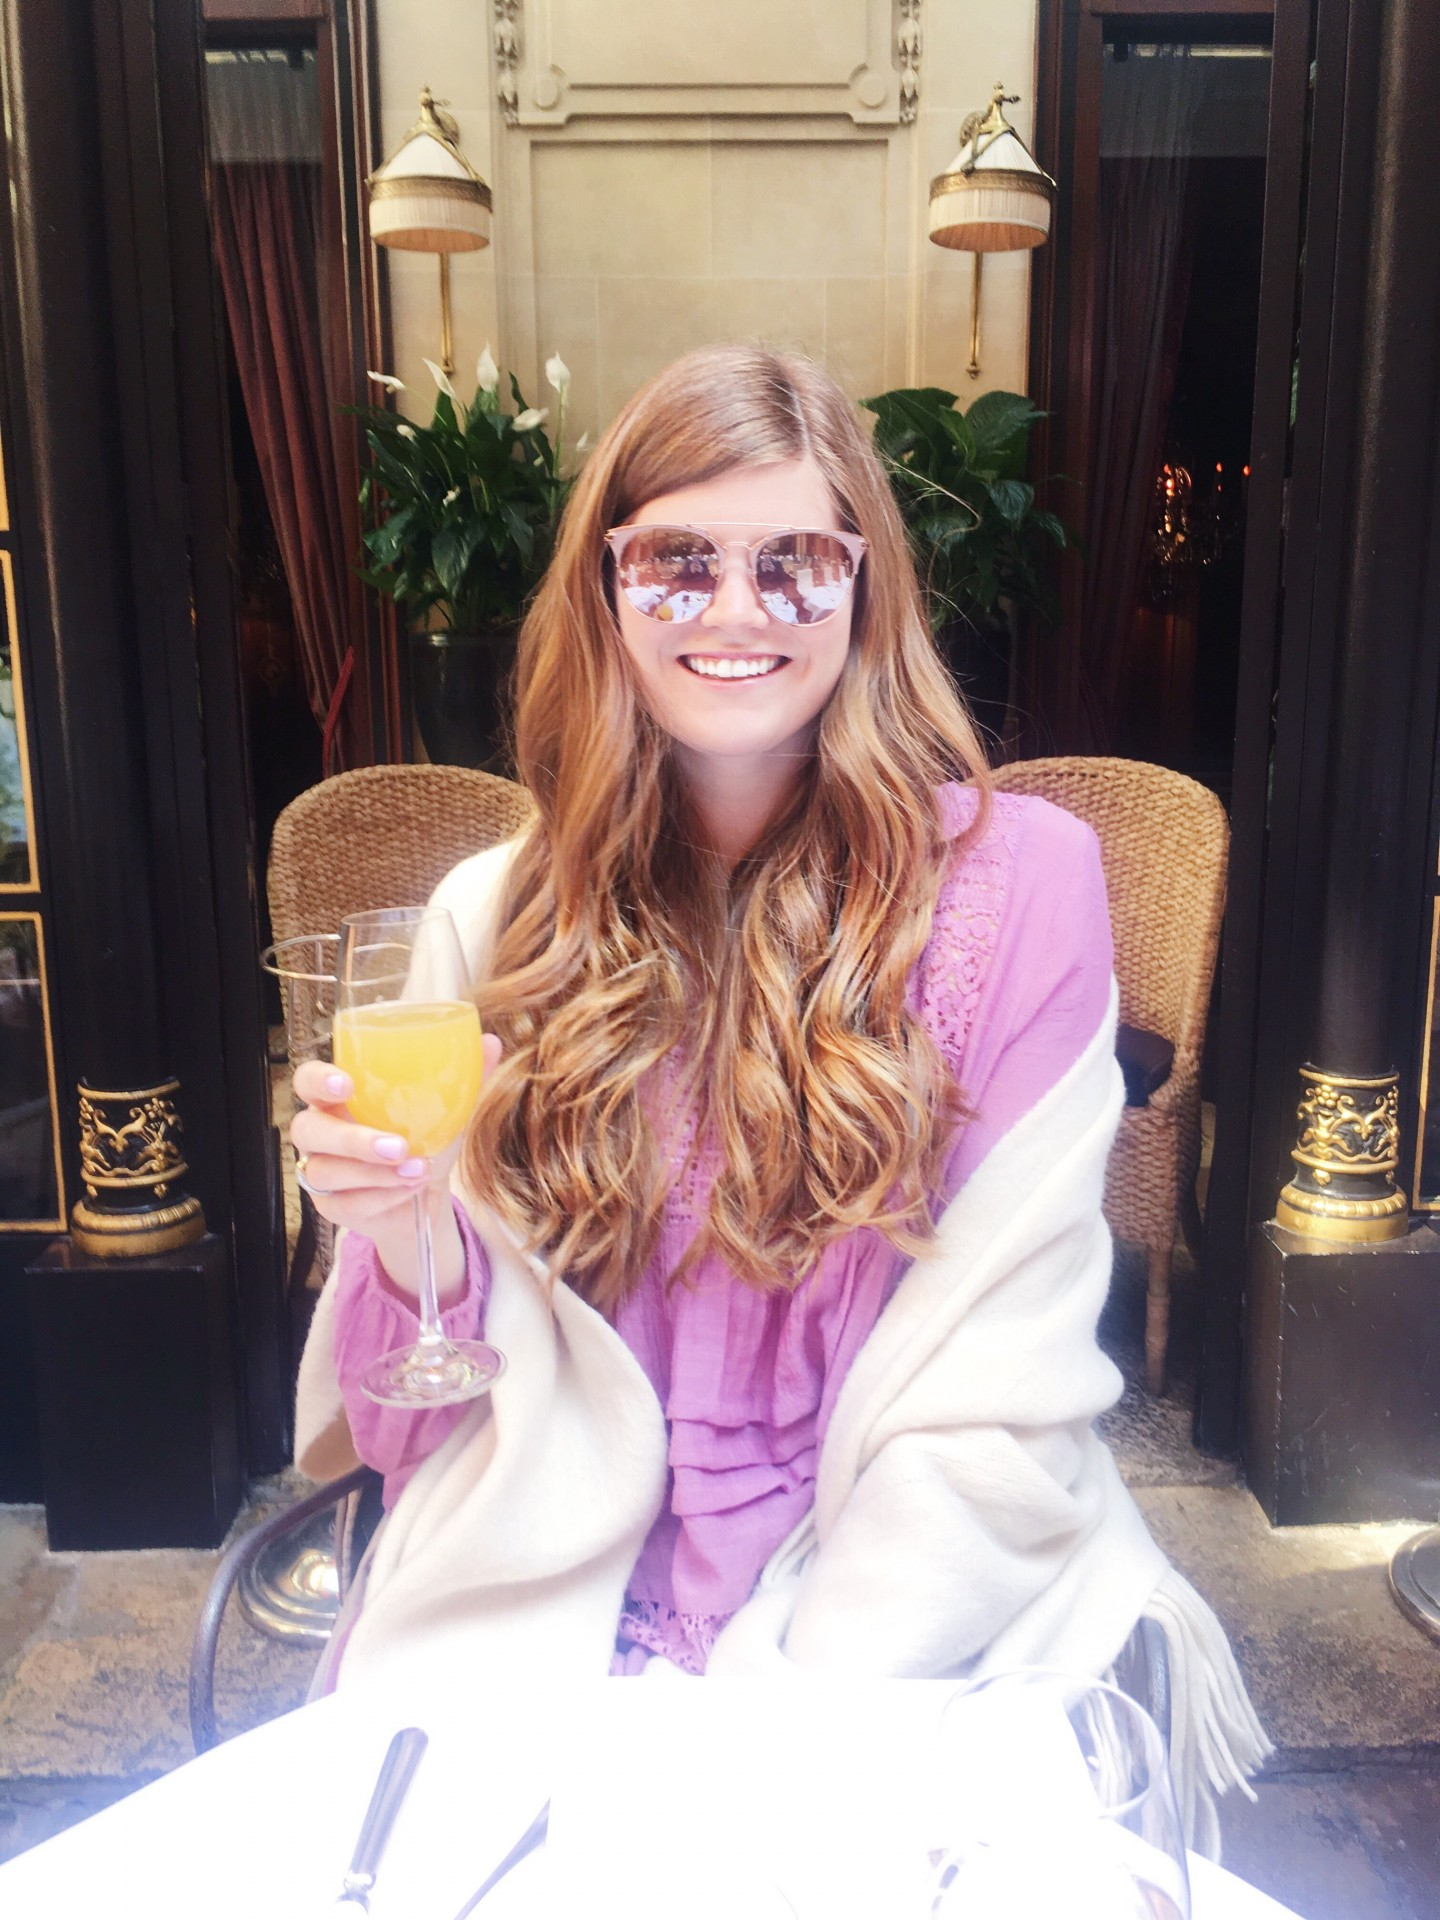 Lifestyle blogger Mollie Sheperdson shares her Travel Guide to 24 Hours in Paris